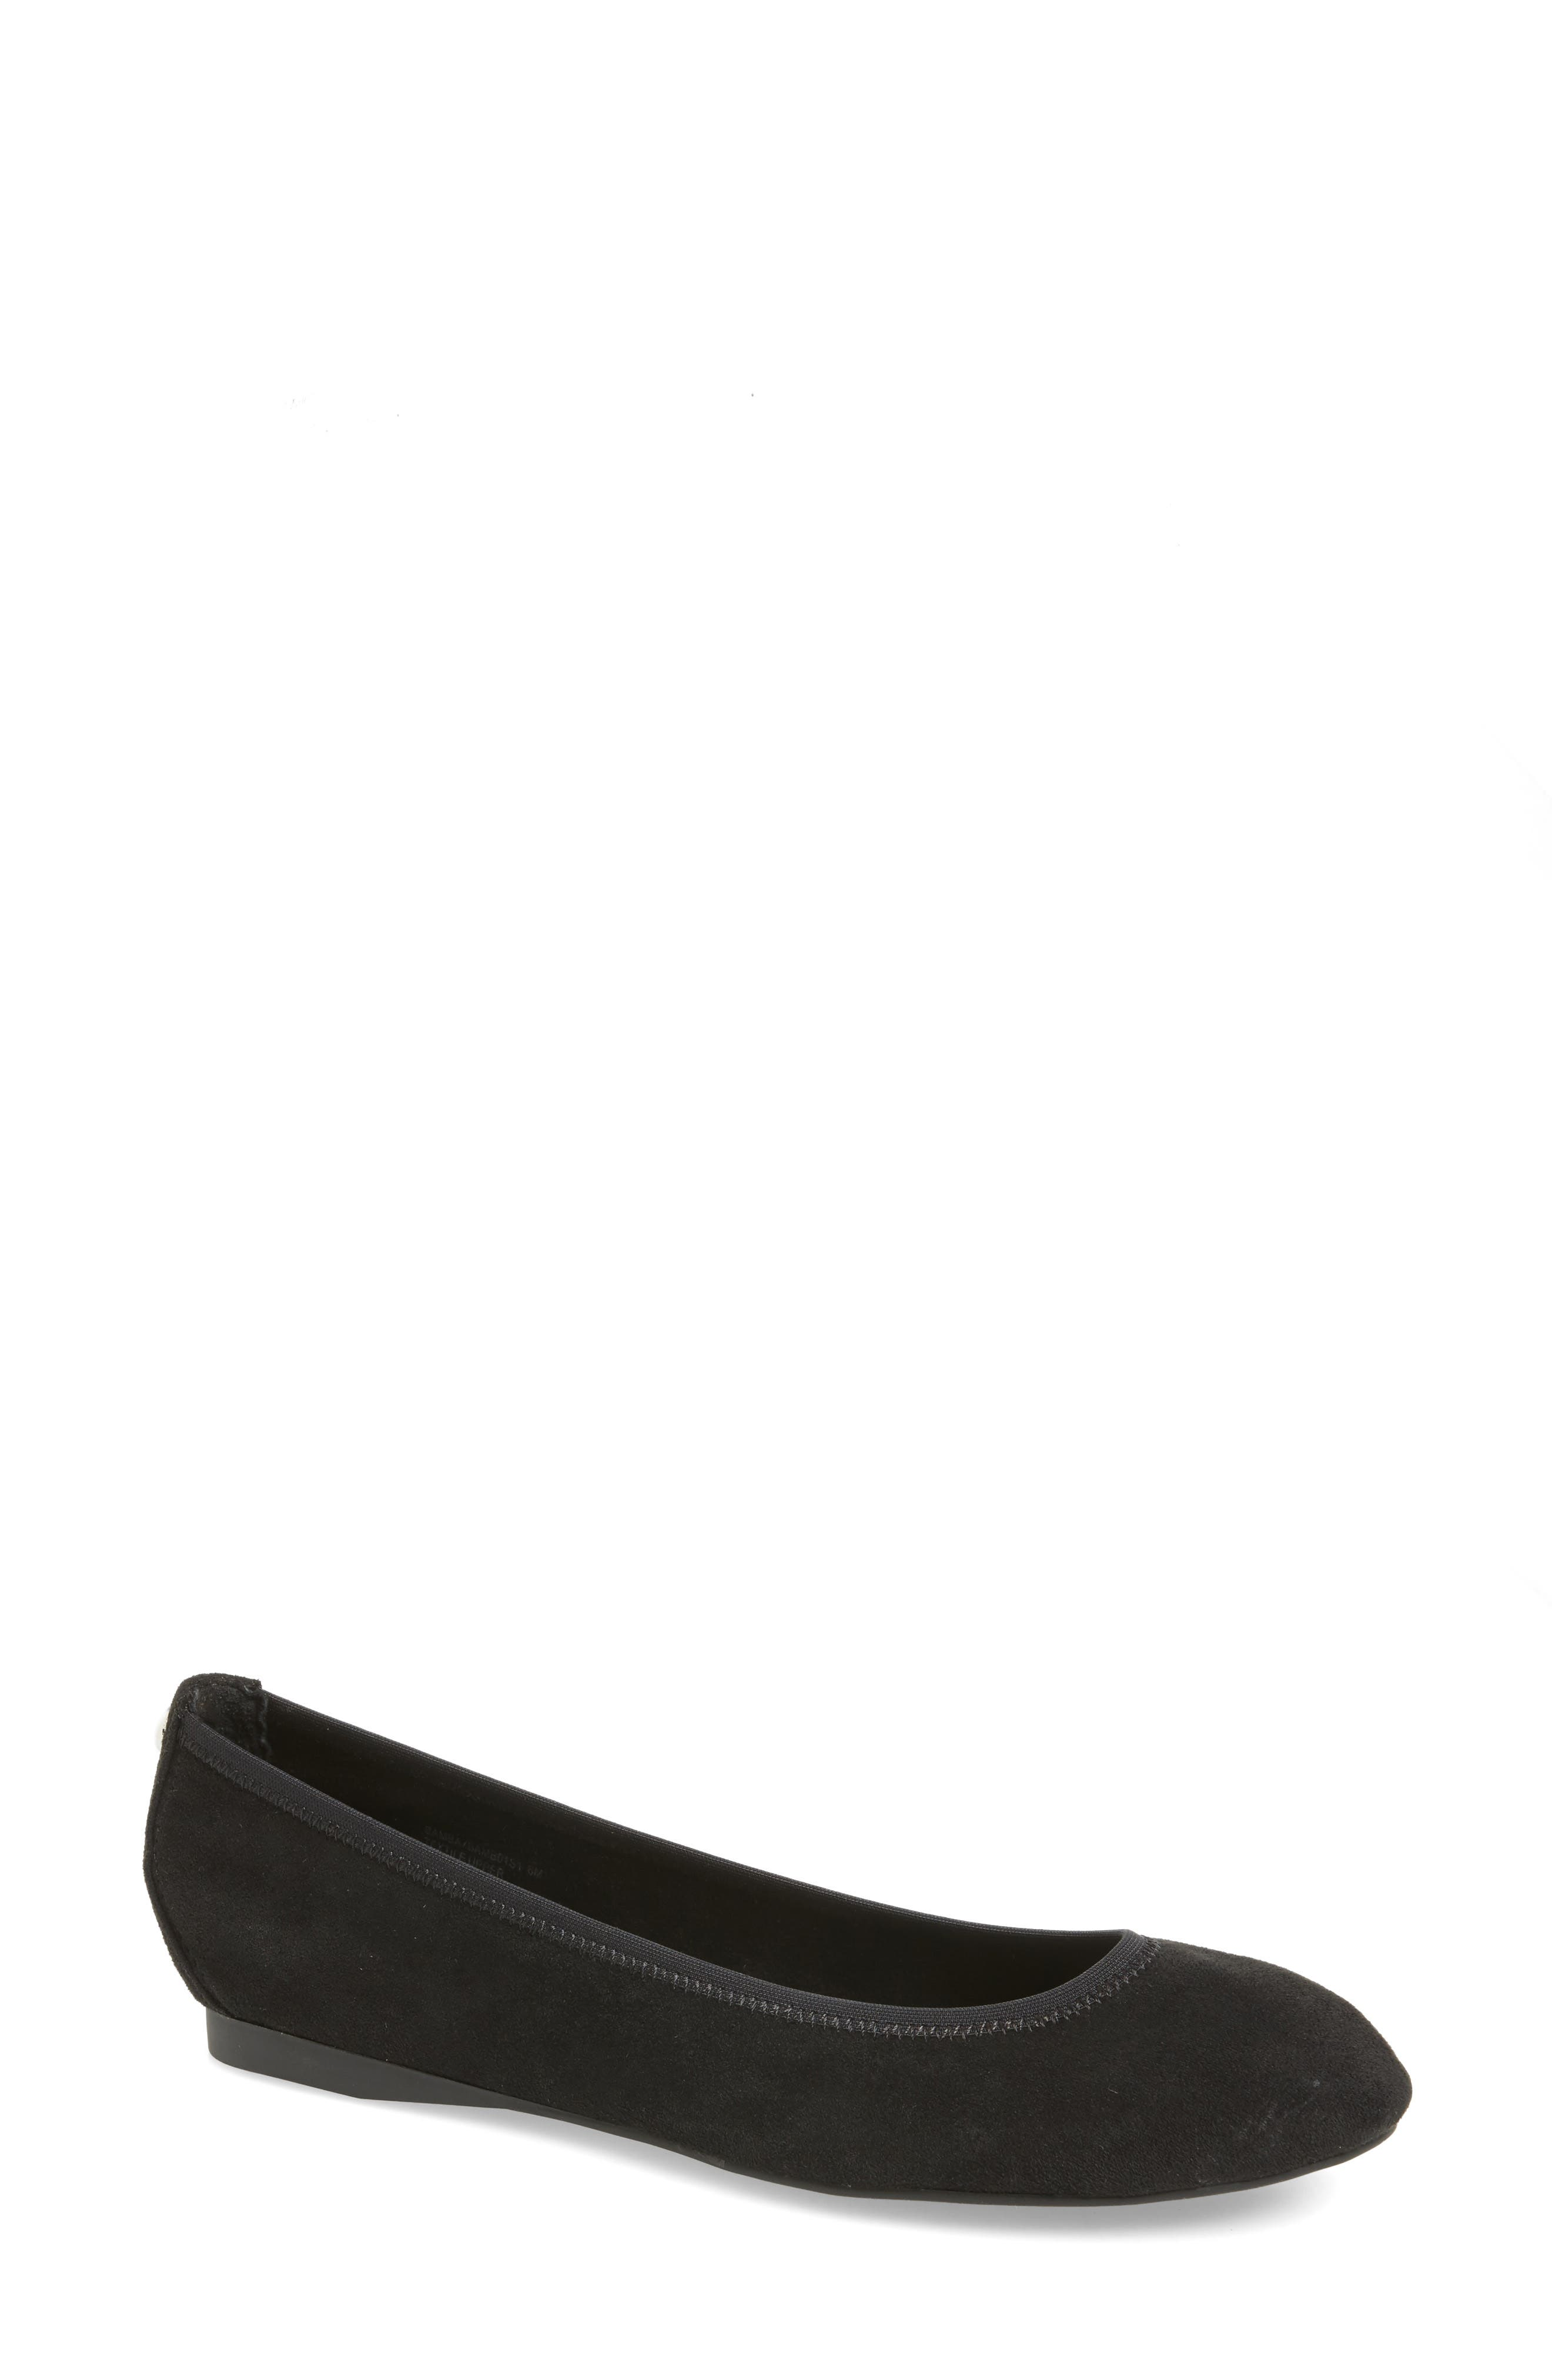 Bamba Ballet Flat,                         Main,                         color,